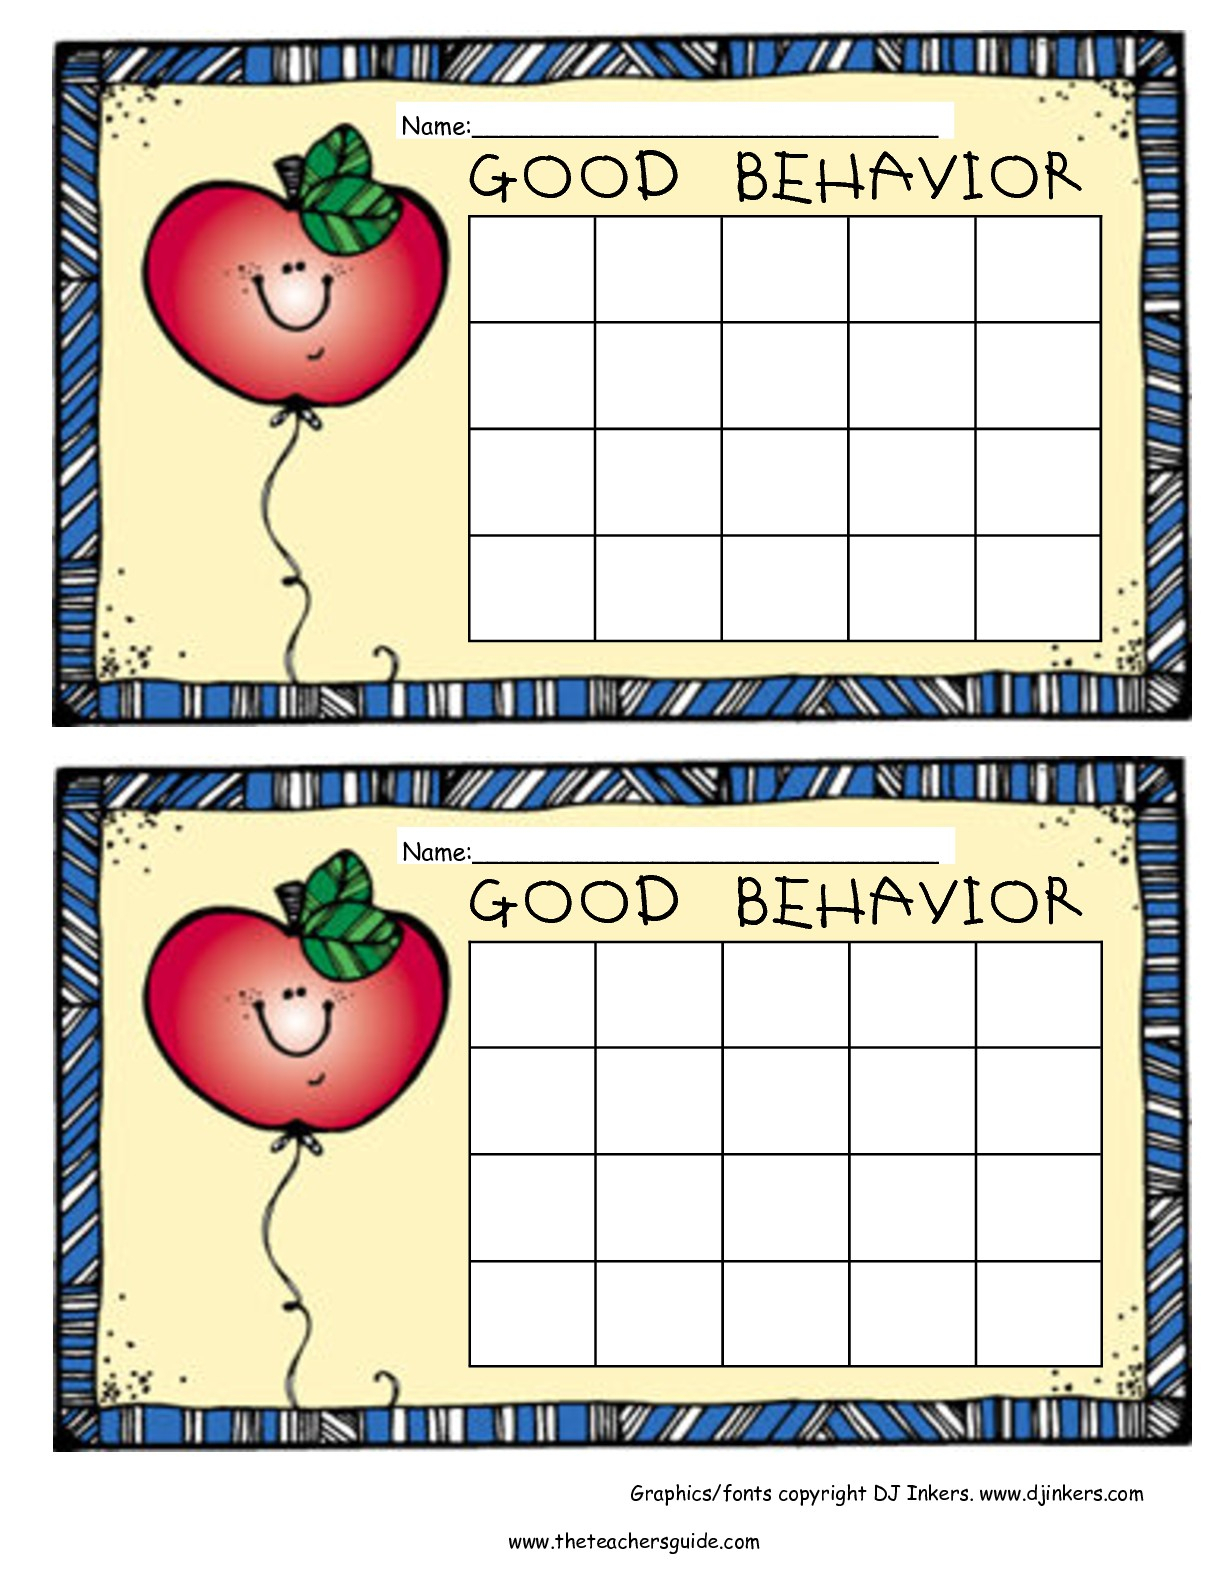 Free Printable Reward And Incentive Charts regarding Behavior Charts For Kids Templates